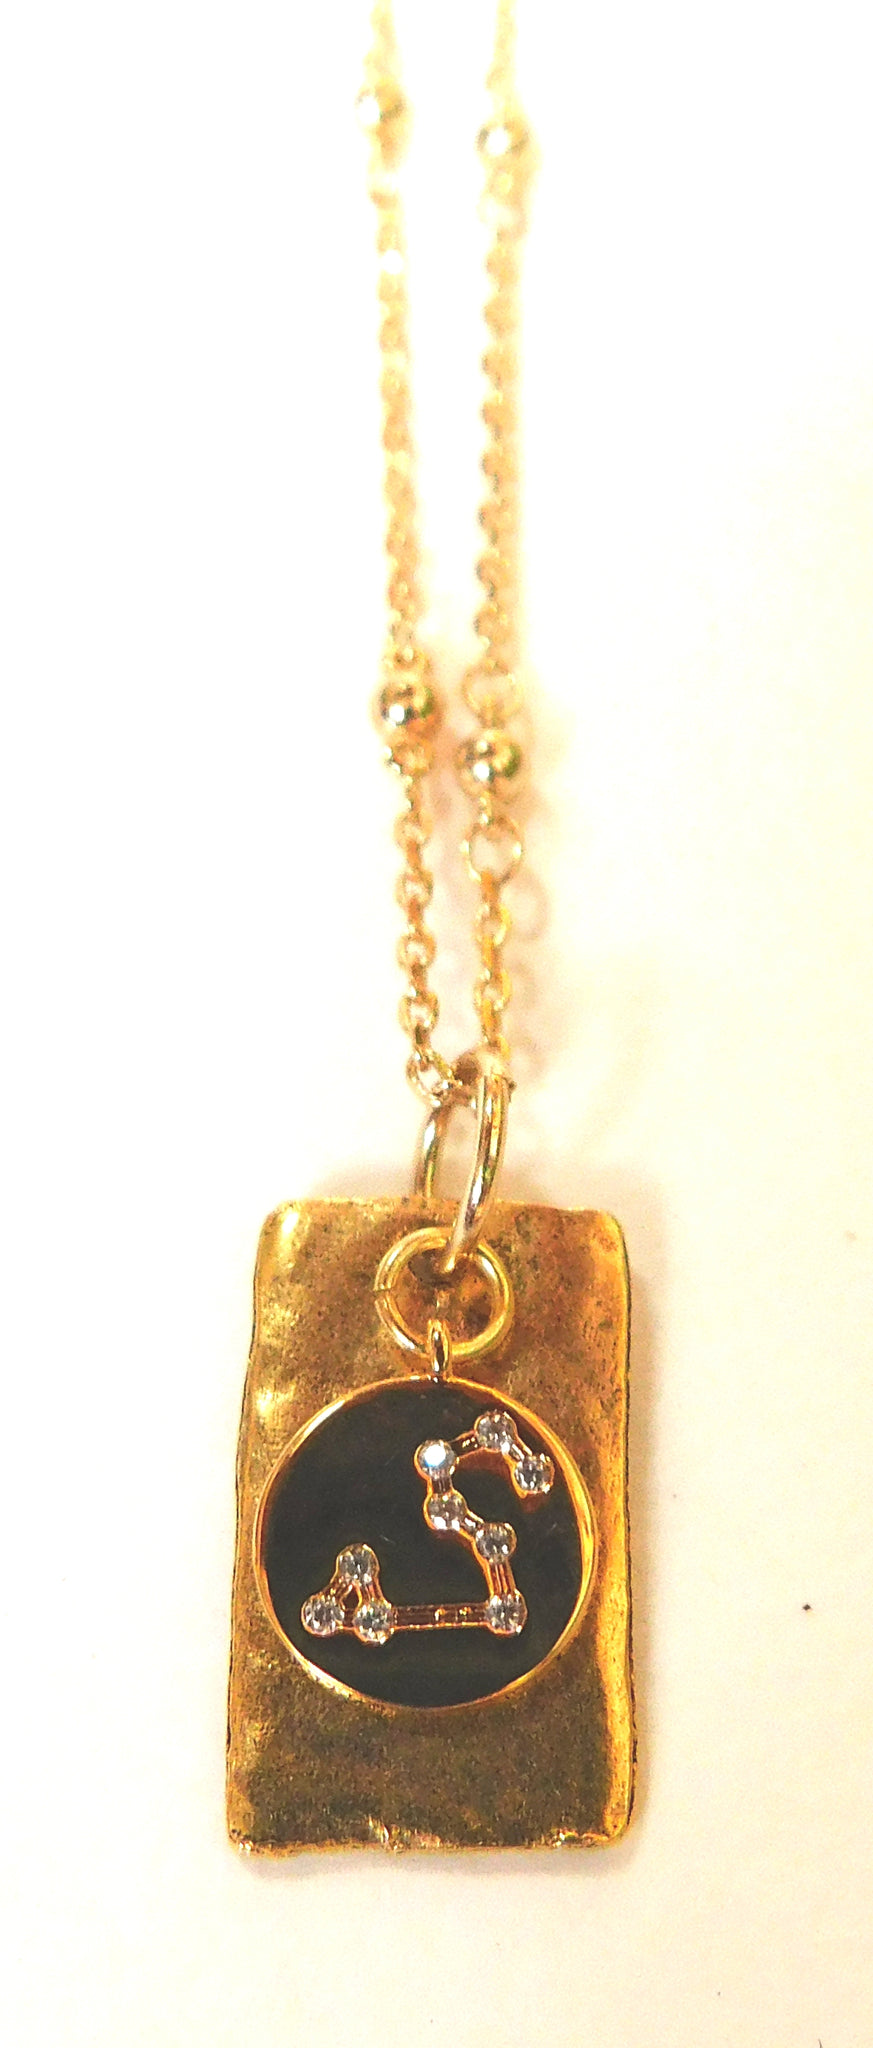 Cosmic ID Necklace